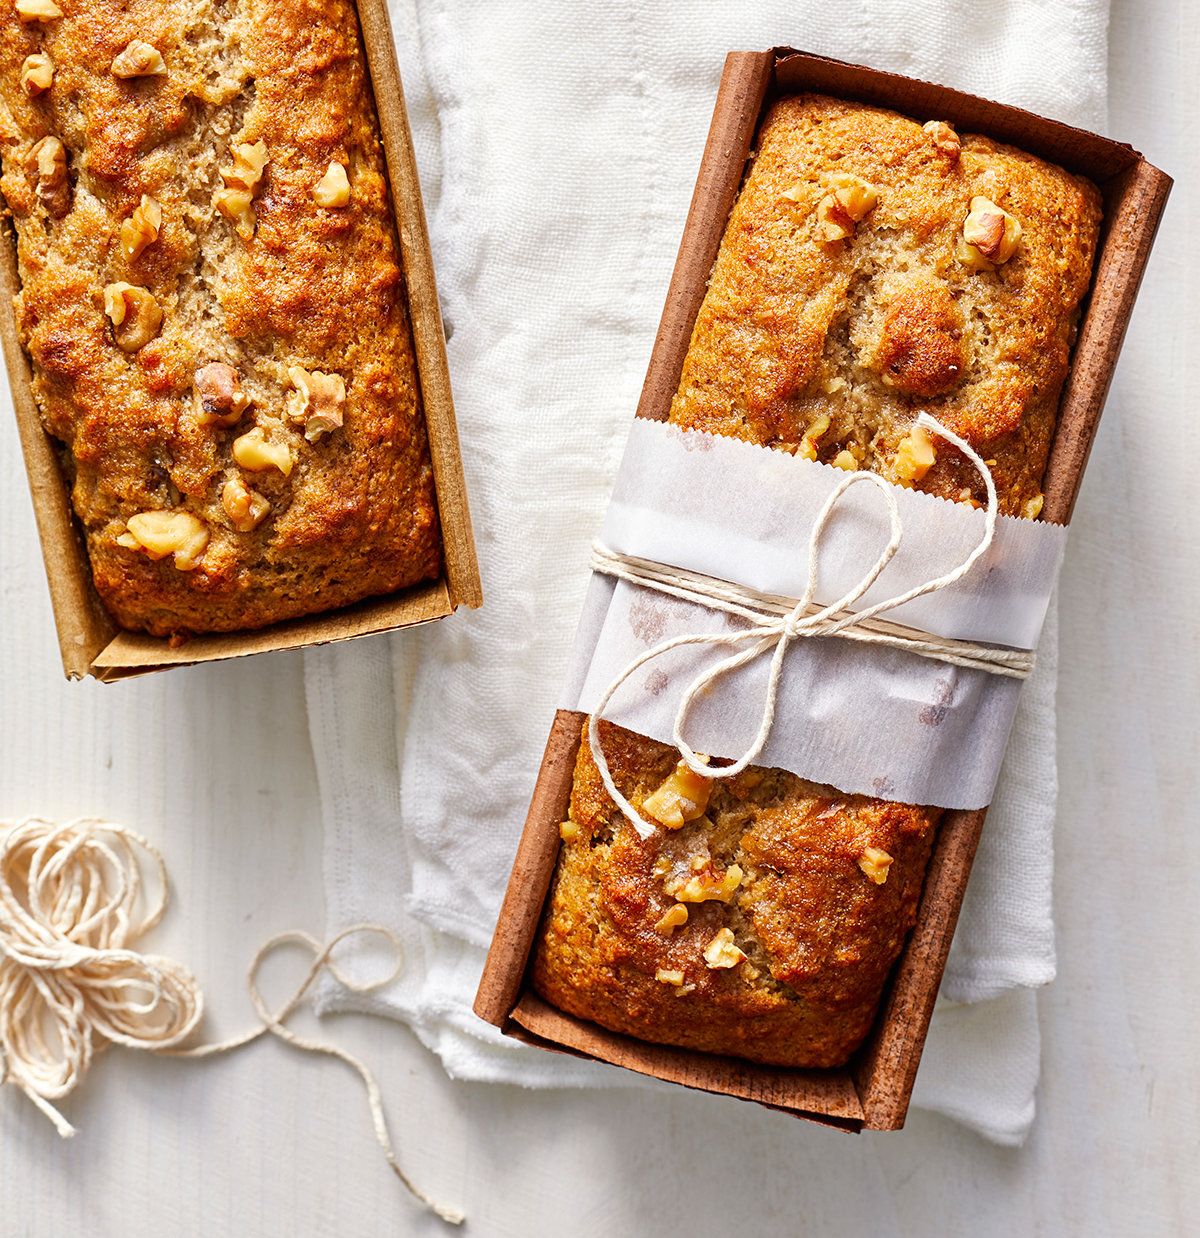 How to make Banana Bread tasty